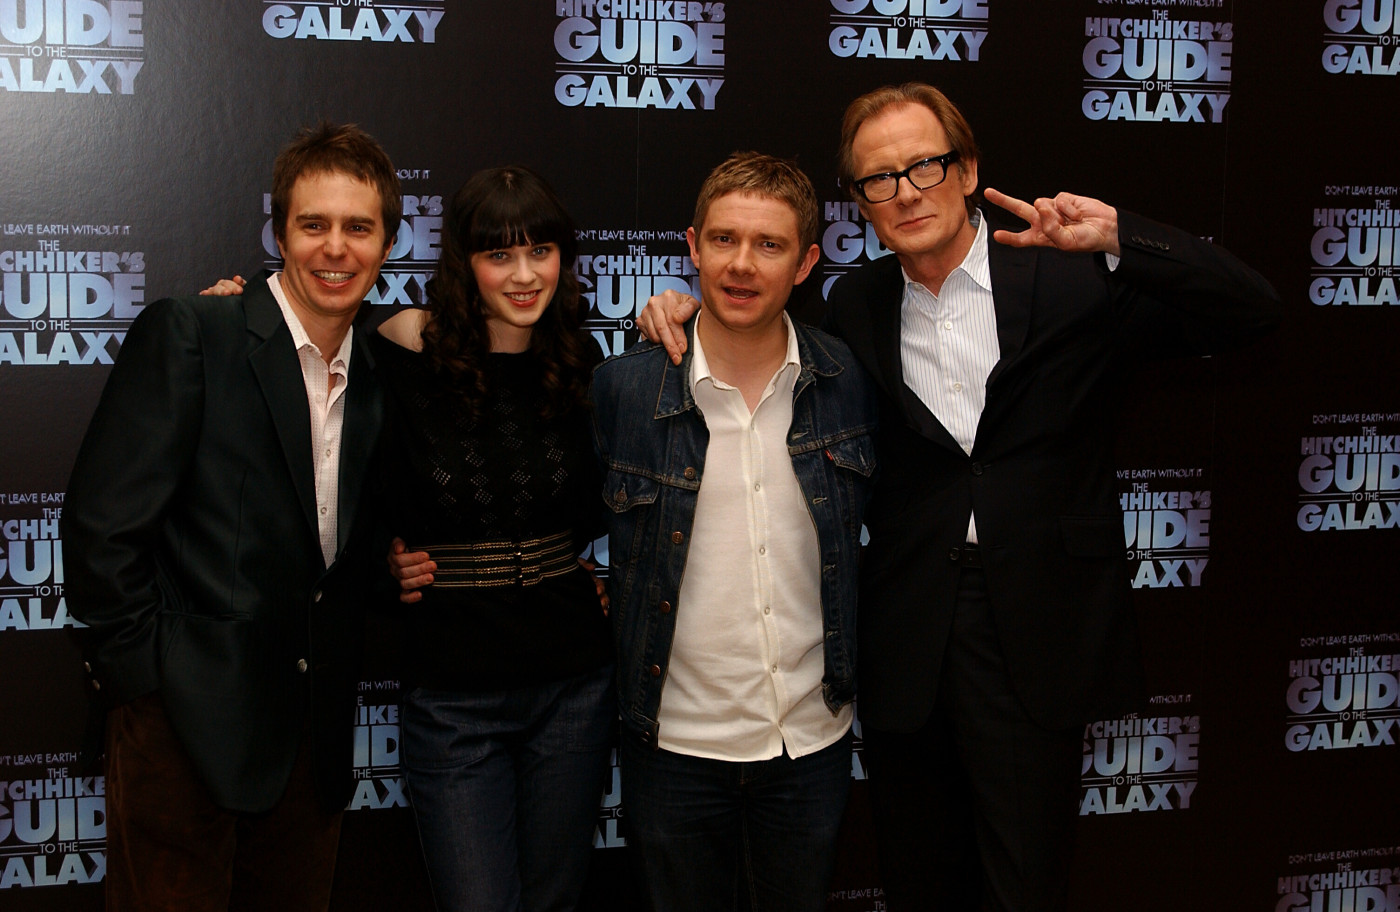 Hitchhiker's Guide to the Galaxy cast